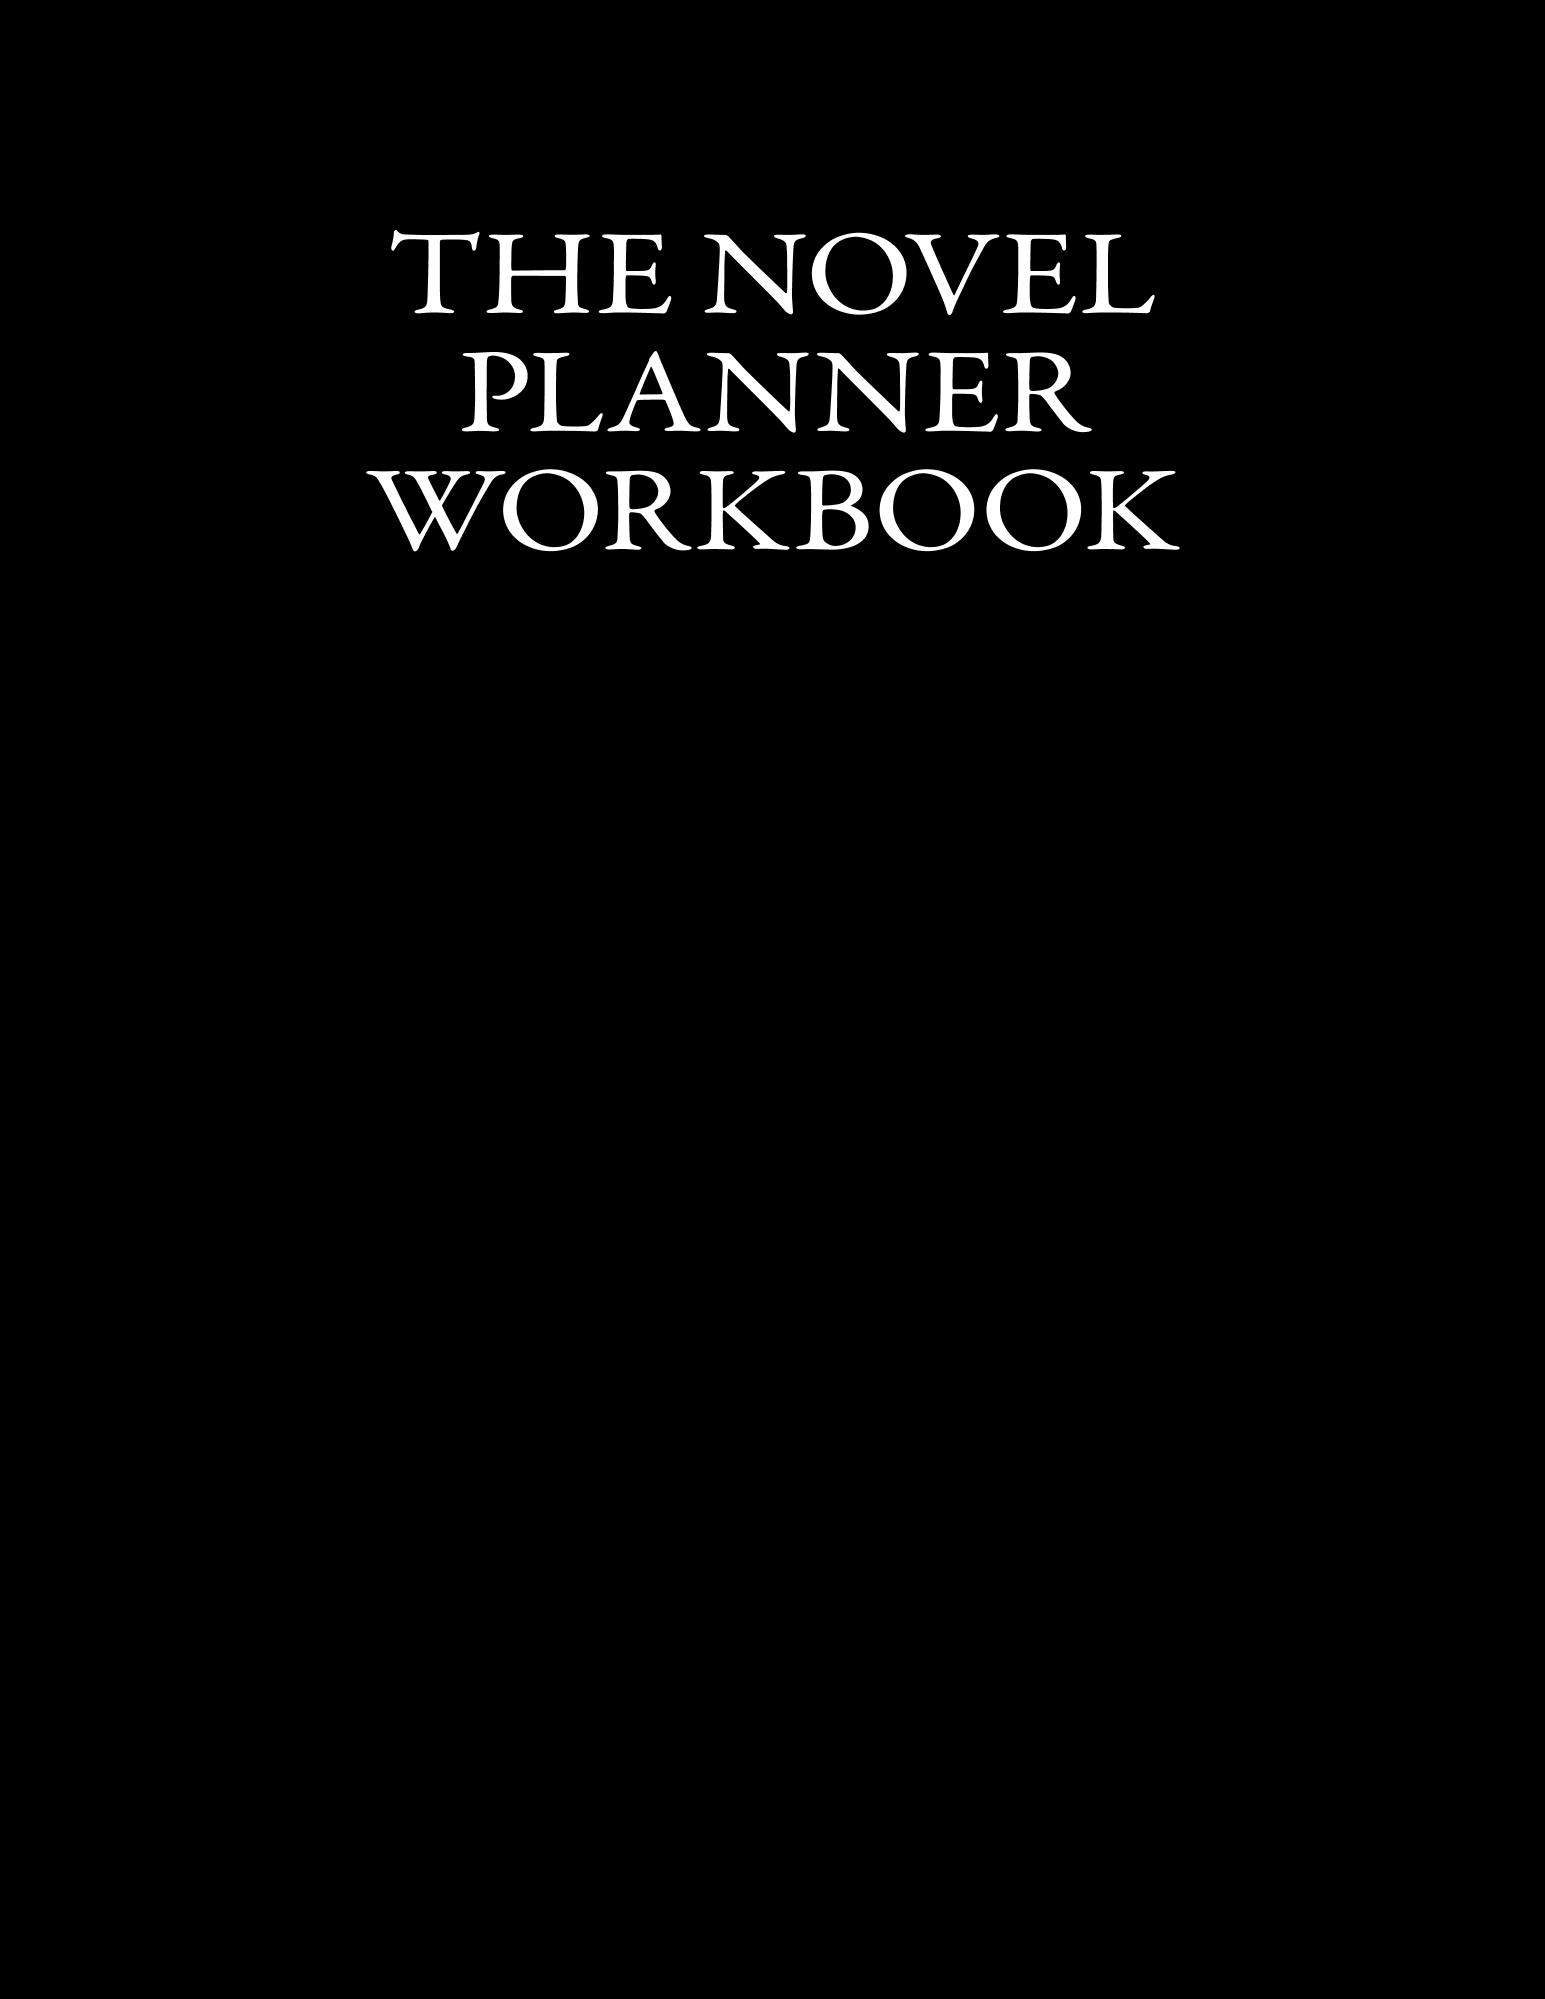 The Novel Planner Workbook Black.jpg